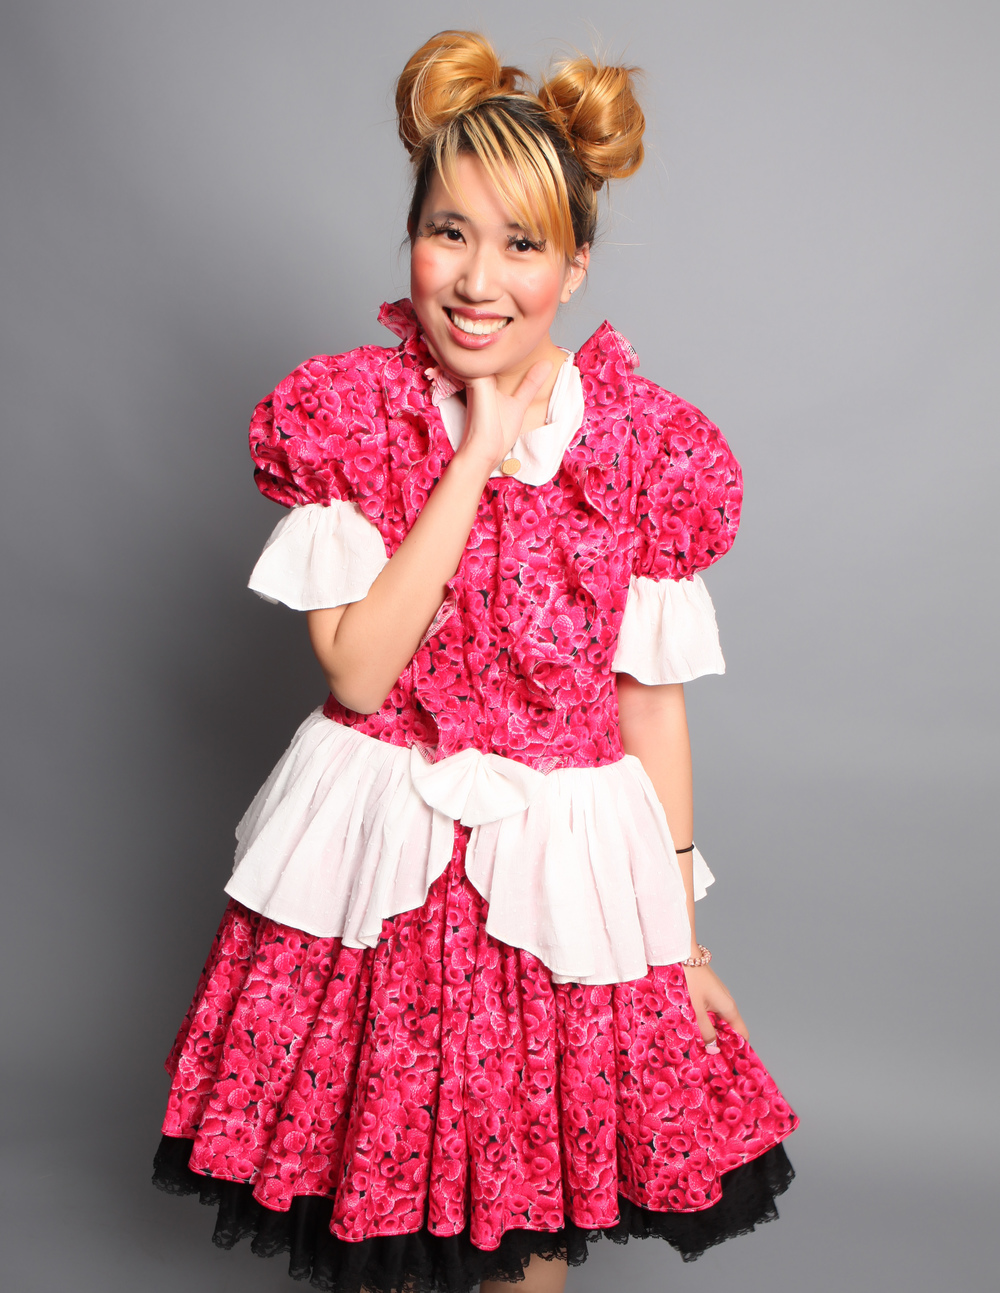 Photography by Beatriz-Fashion-Design-School-Austin-ASFD-Japanese-Harajuku-Fashion-Specialty-Course-classic-sweet-lolita-berry.jpg